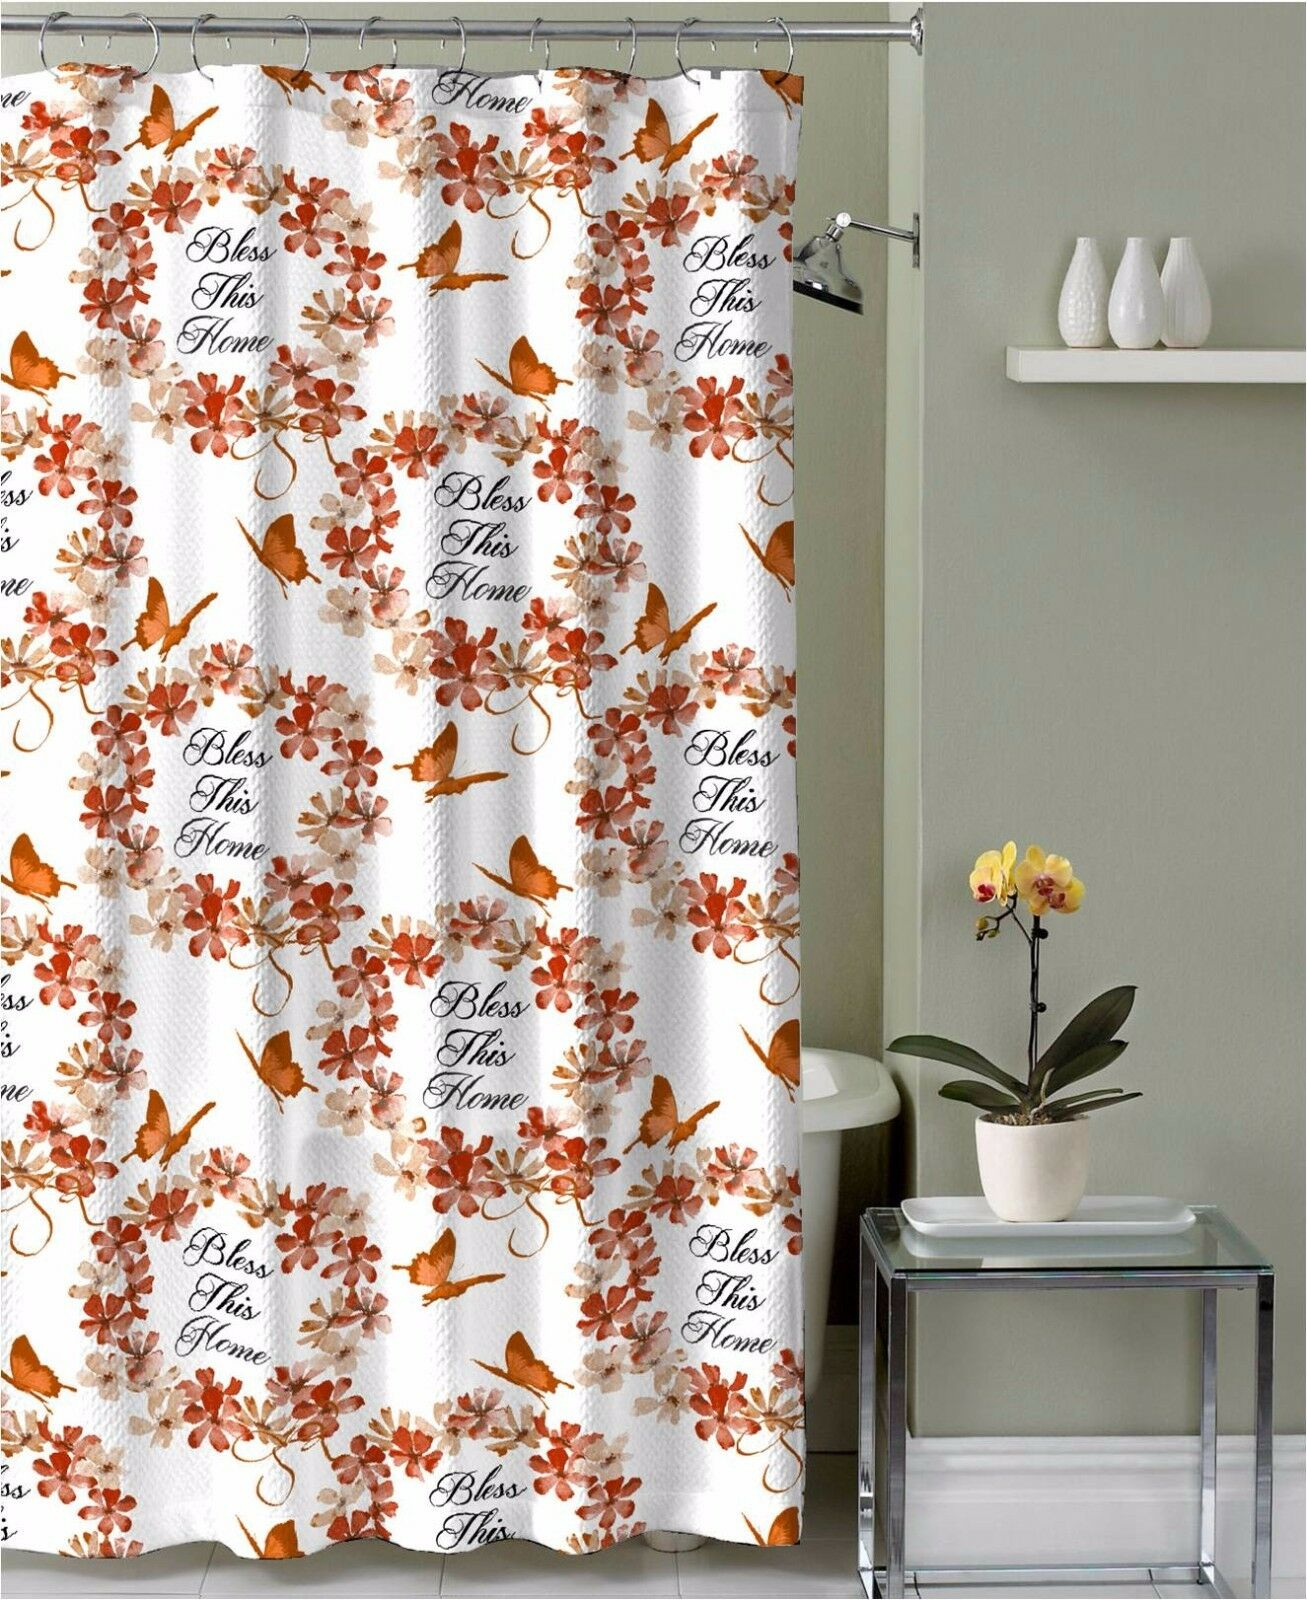 red and tan shower curtain. Picture 1 of 3  Red Orange Tan Fabric Shower Curtain Bless This Home Floral Wreath